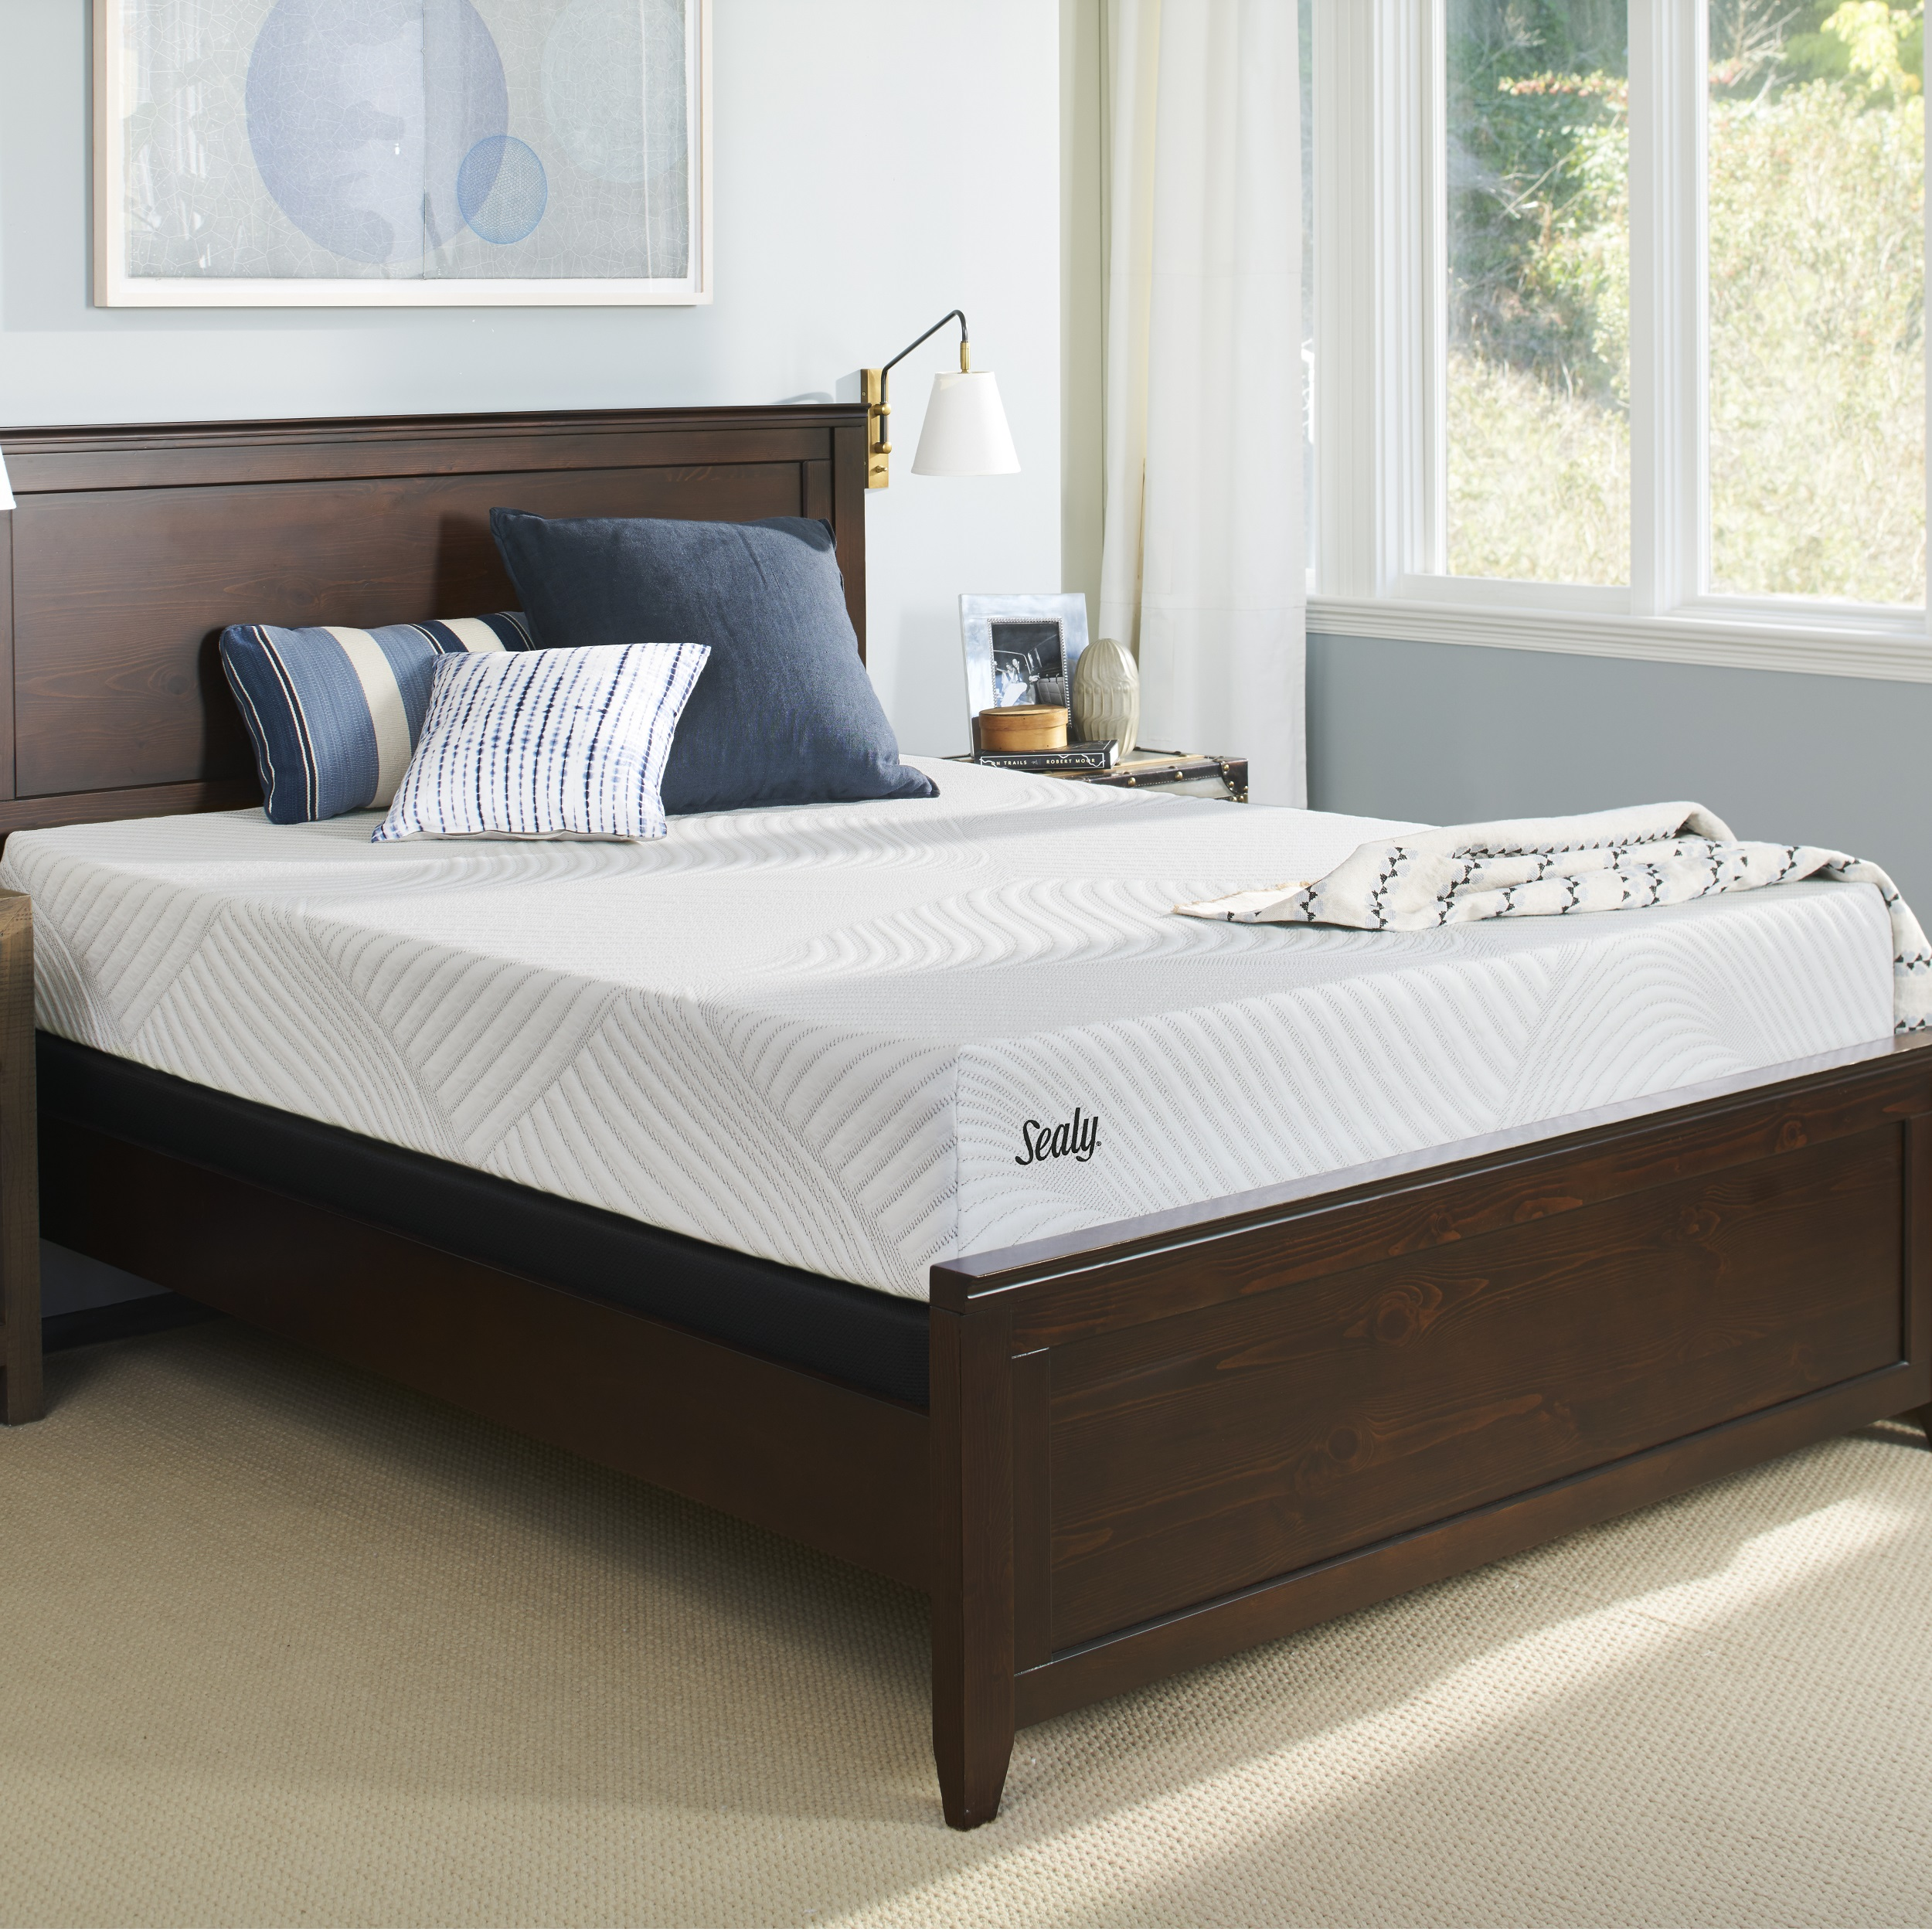 """Sealy Conform Essentials 10.5"""" Cushion Firm Mattress with High Profile Foundation Set by Sealy"""